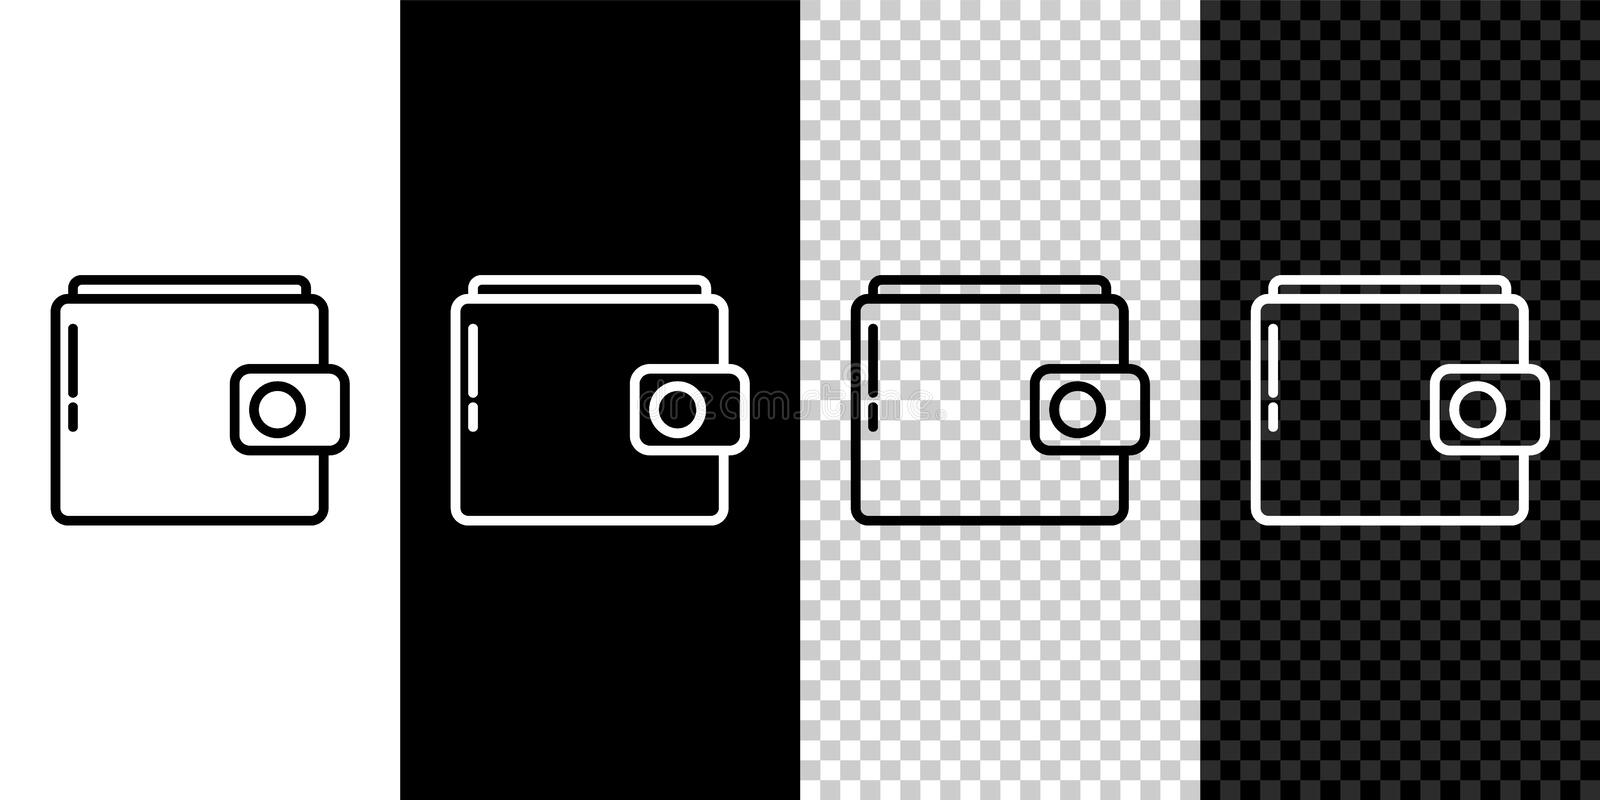 wallet icon black white stock illustrations 6 334 wallet icon black white stock illustrations vectors clipart dreamstime dreamstime com